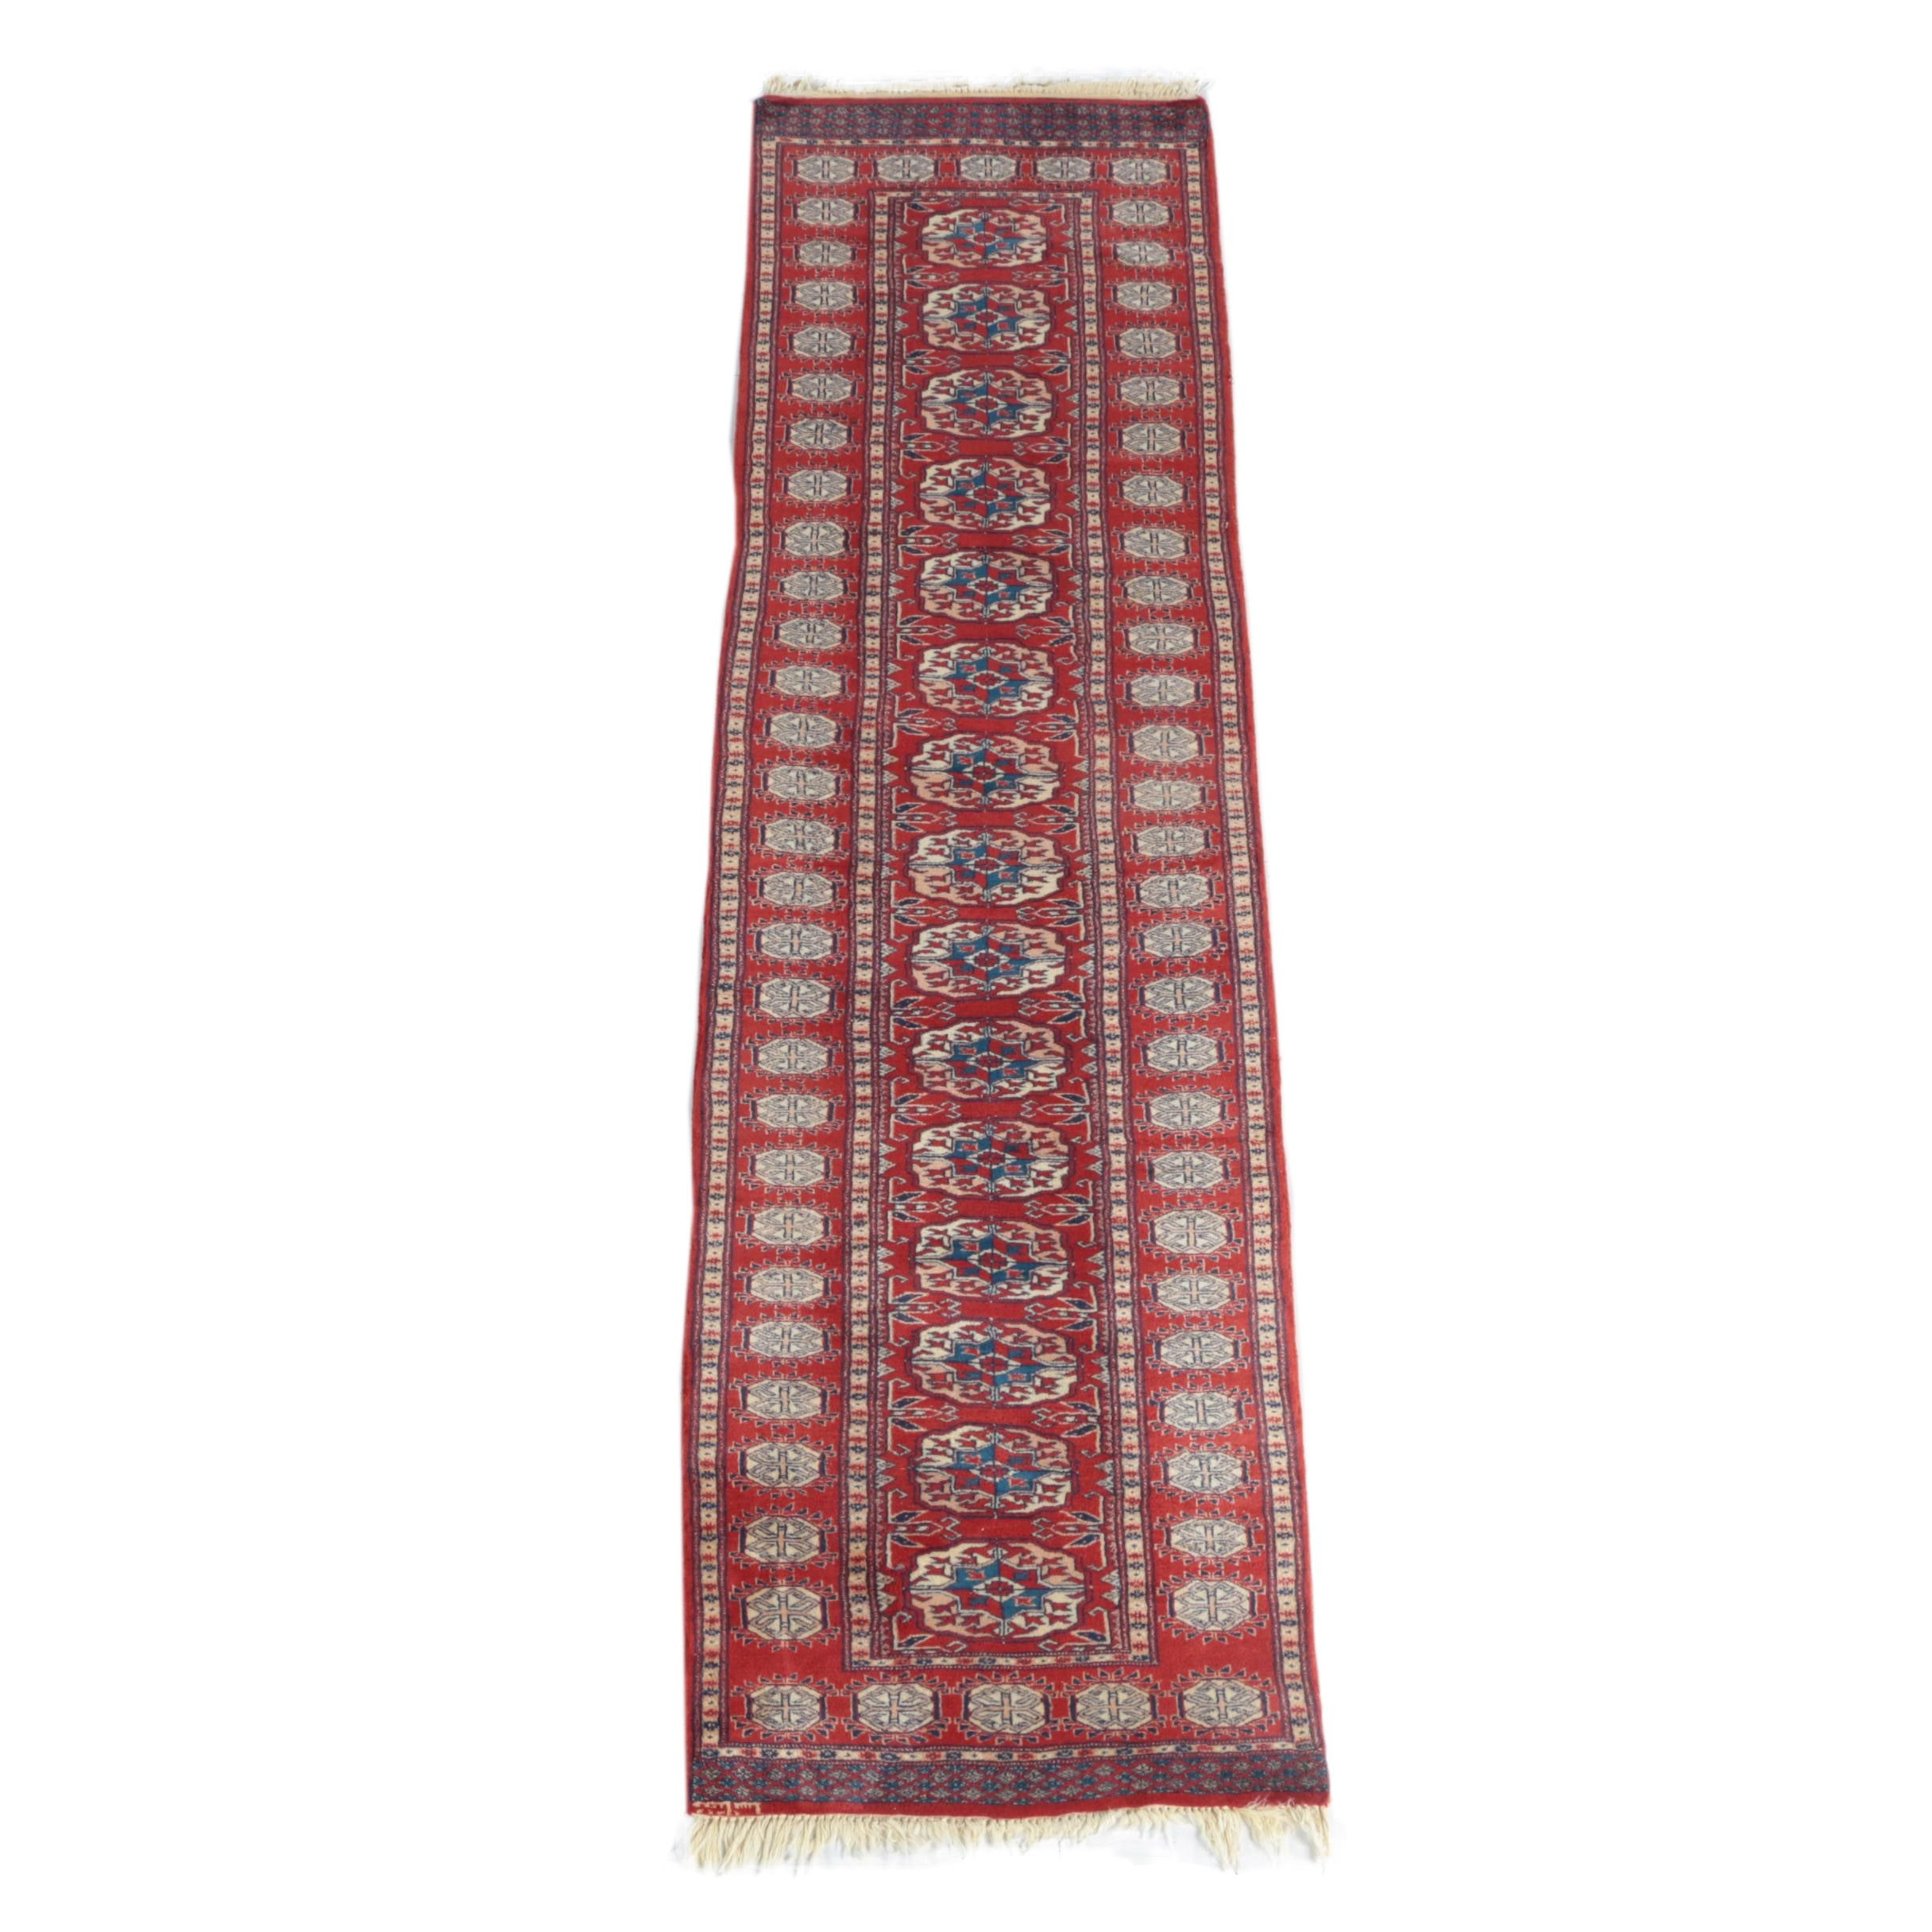 Hand-Knotted Signed Bokhara Wool Carpet Runner